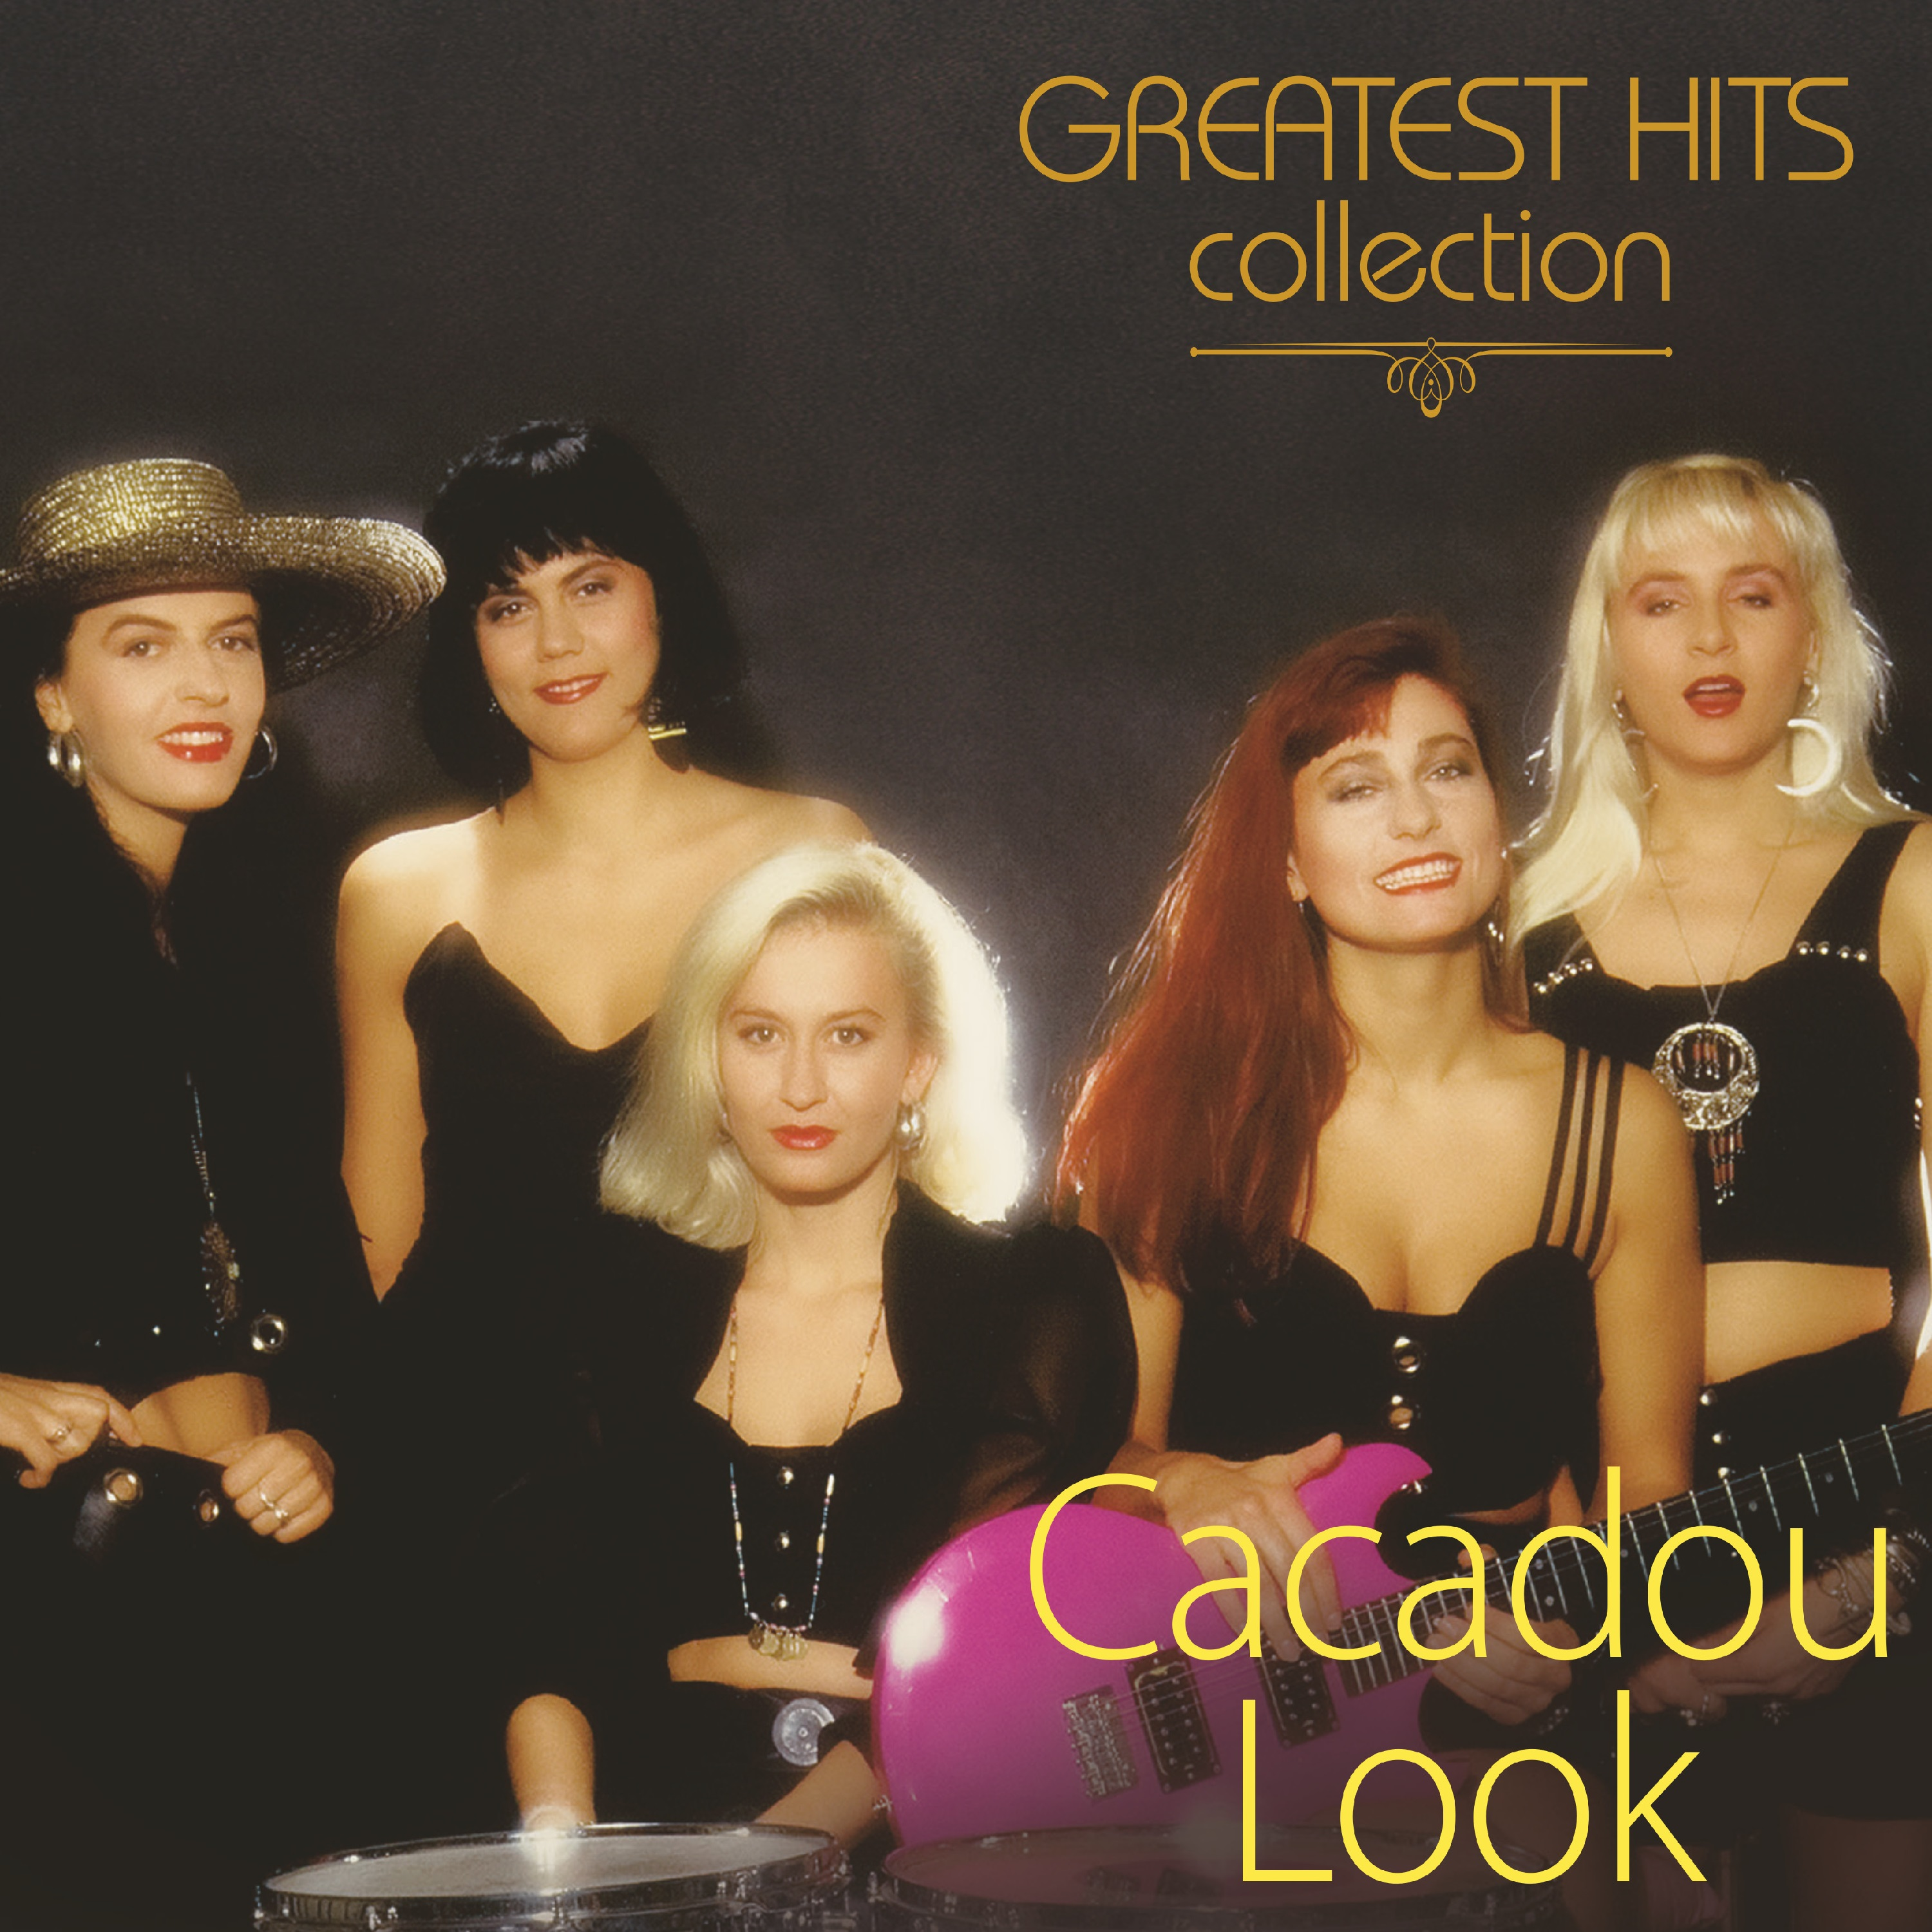 CACADOU LOOK GREATEST HITS COLLECTION